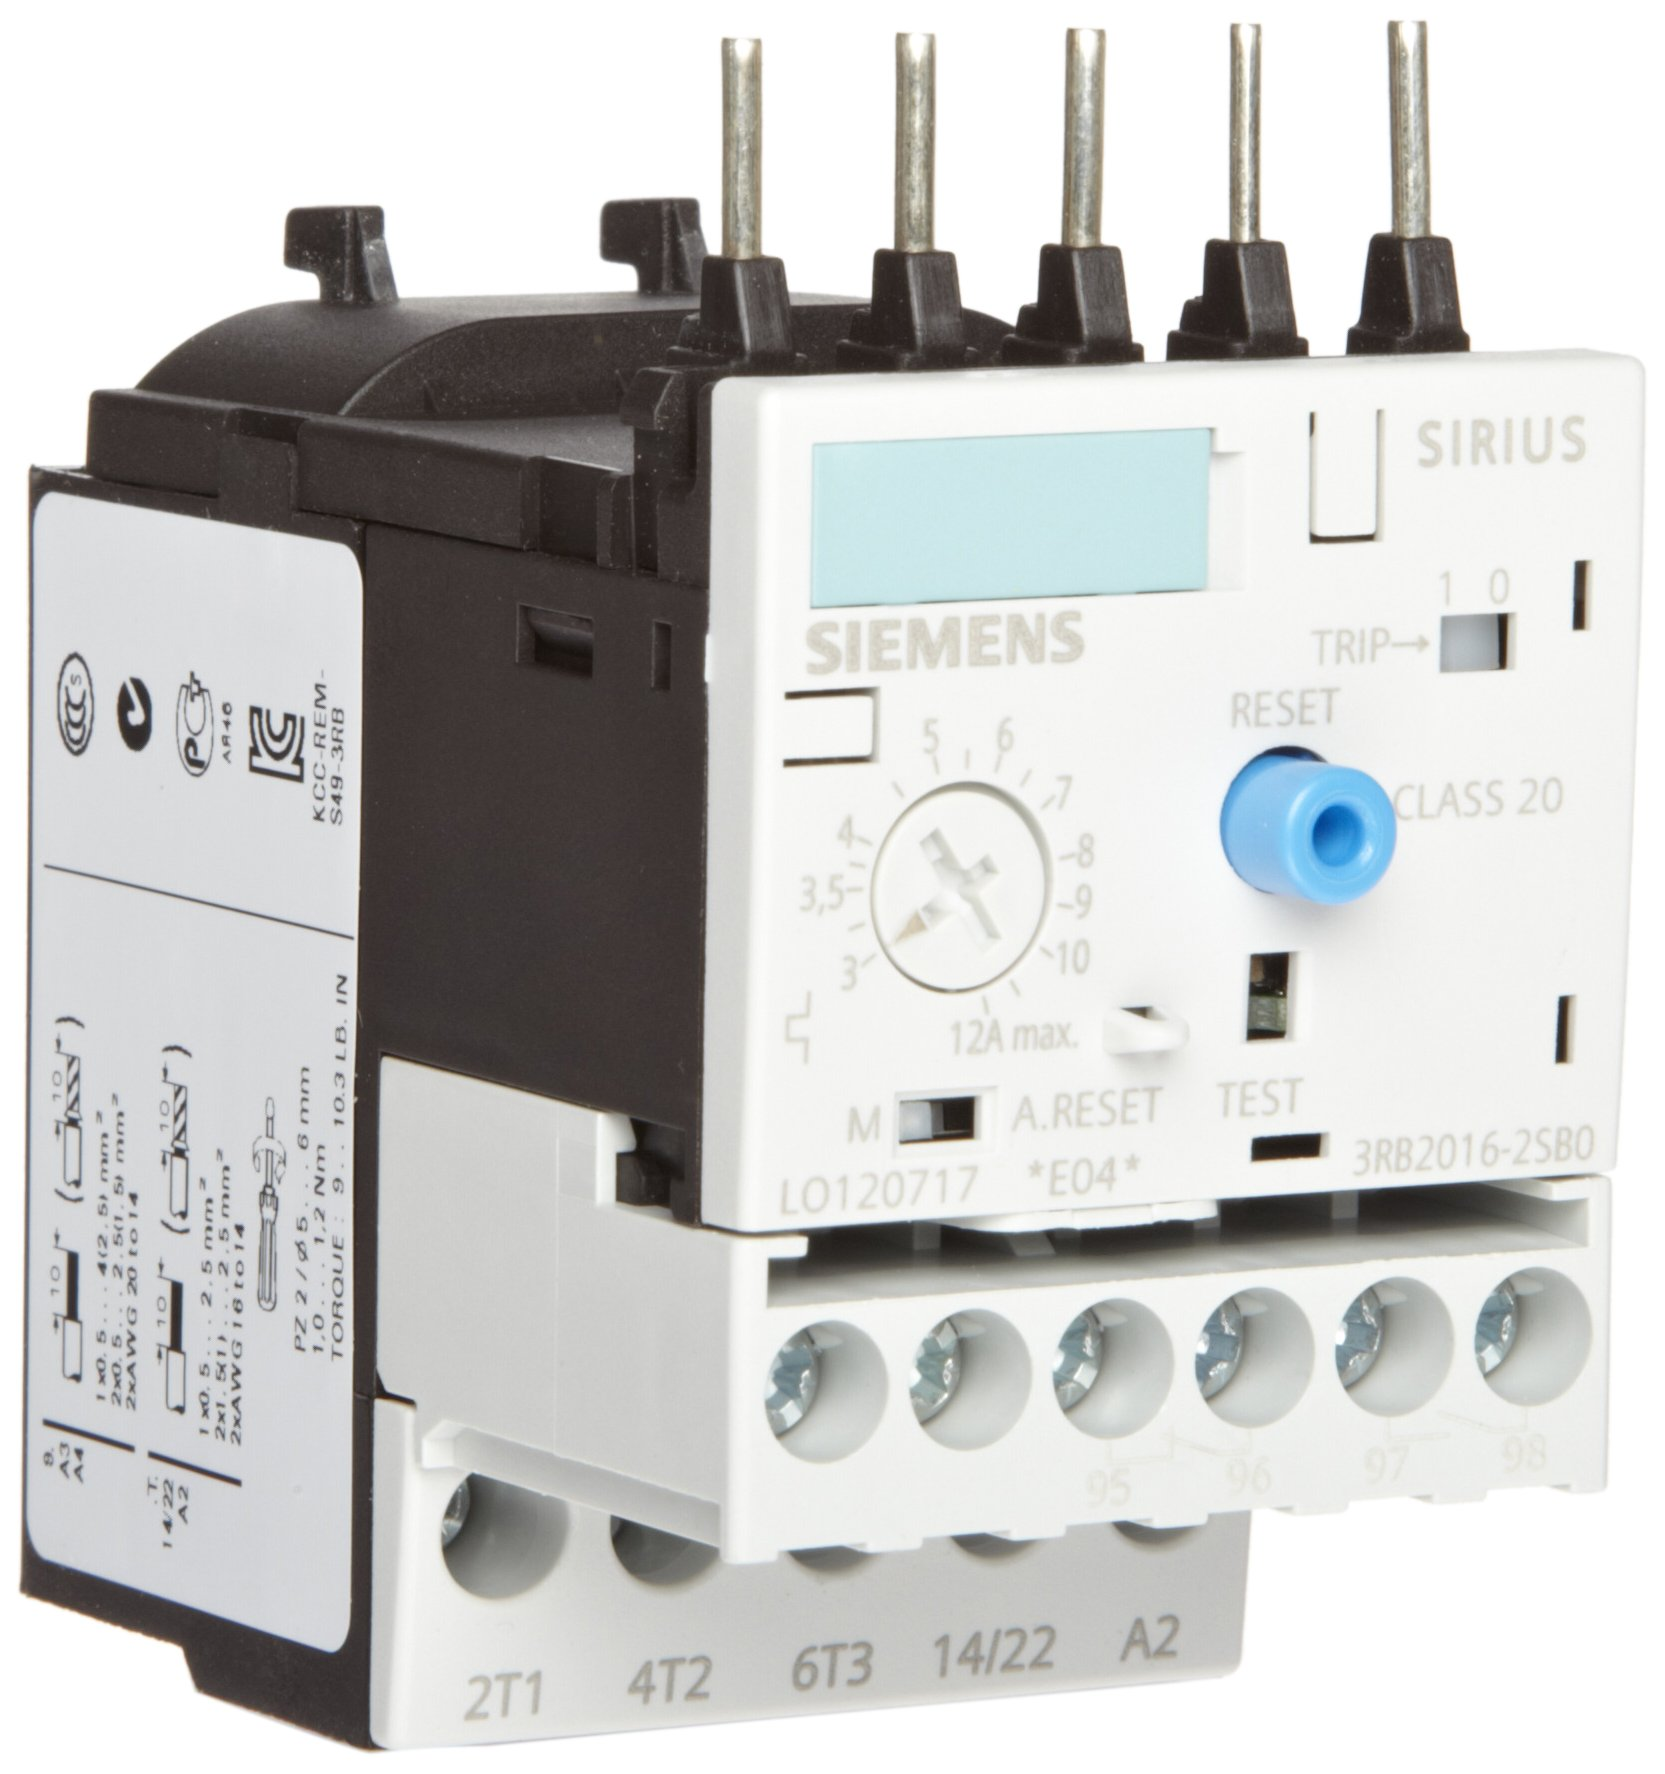 Siemens 3RB20 16- 2SB0 Solid State Overload Relay, Class 20, S00 Contactor Size, 3-12A Set Current Value